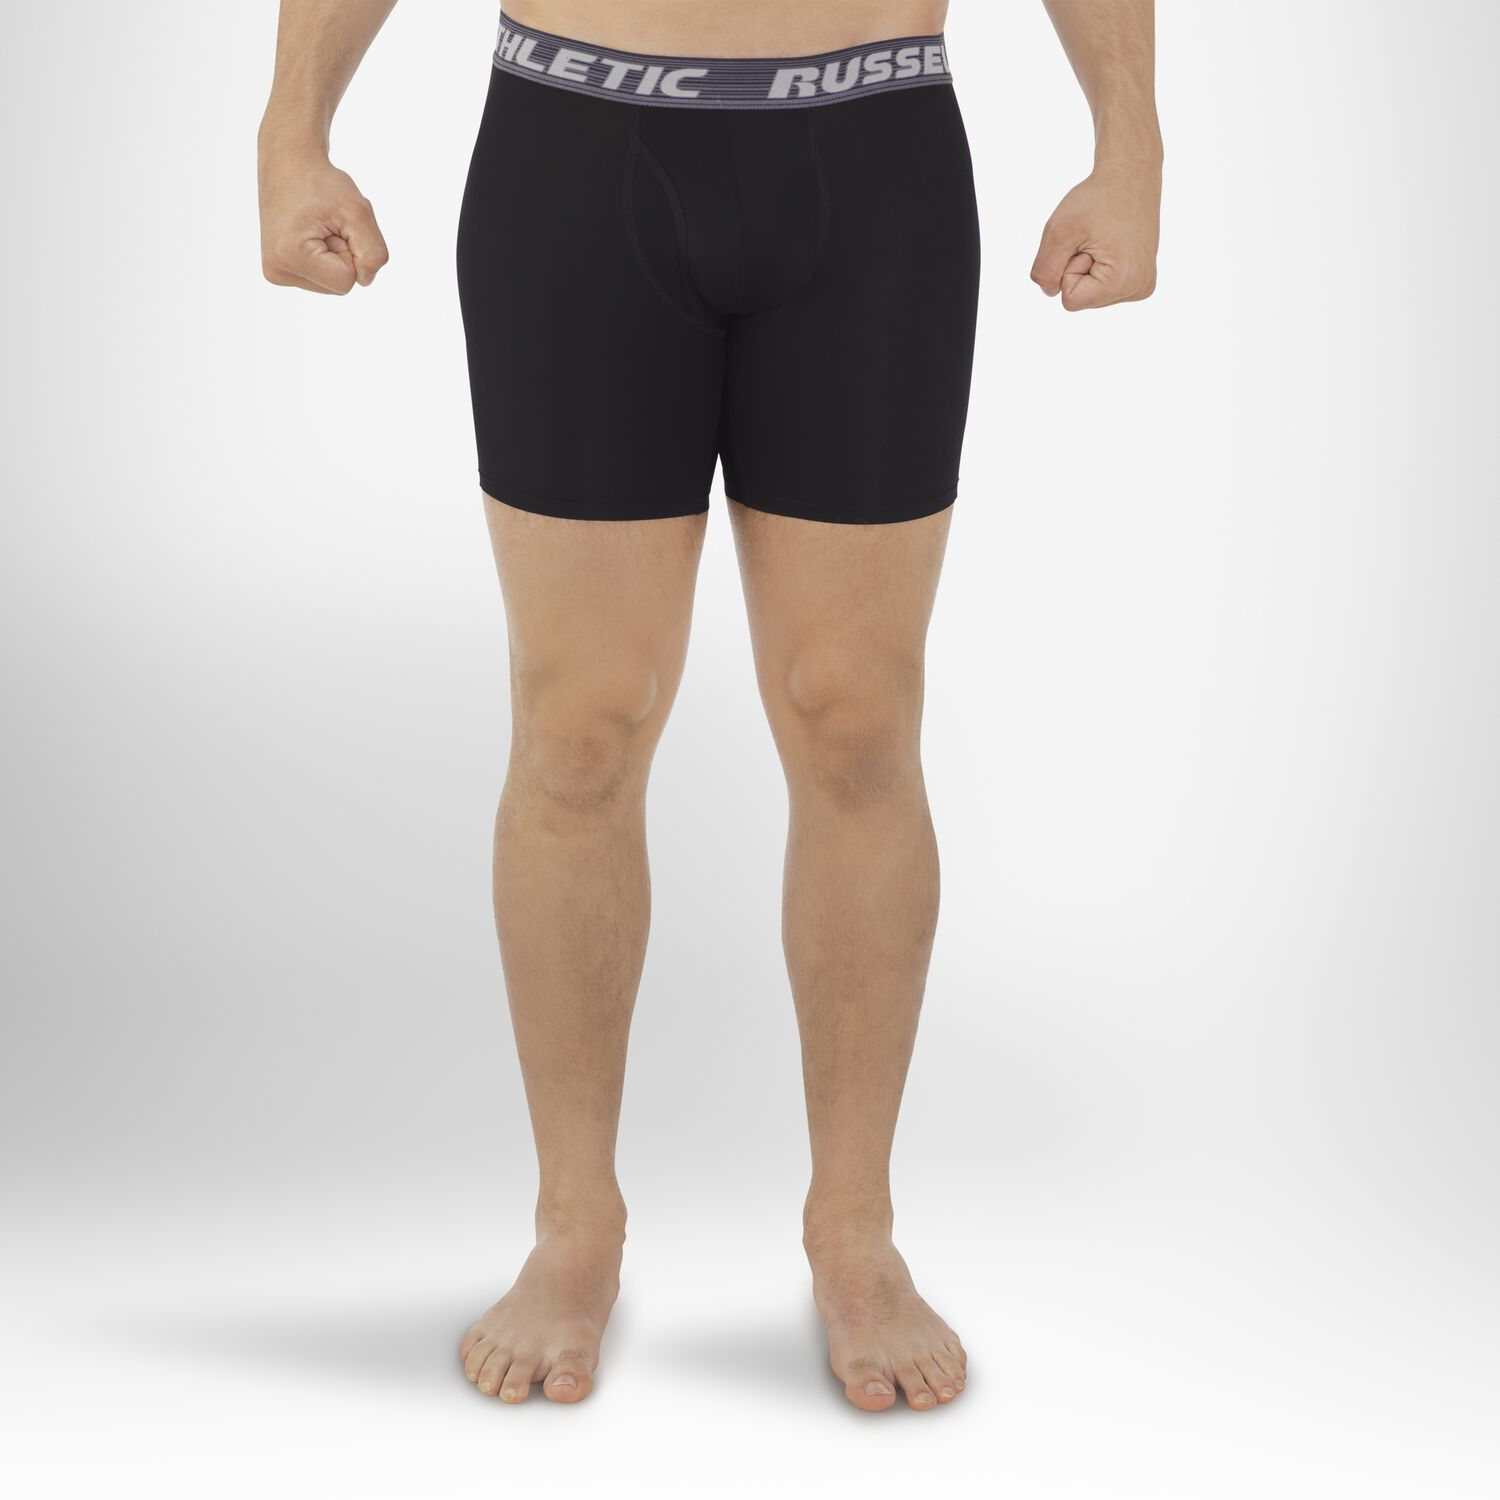 91c47f85 Men's Performance Underwear - Russell US | Russell Athletic